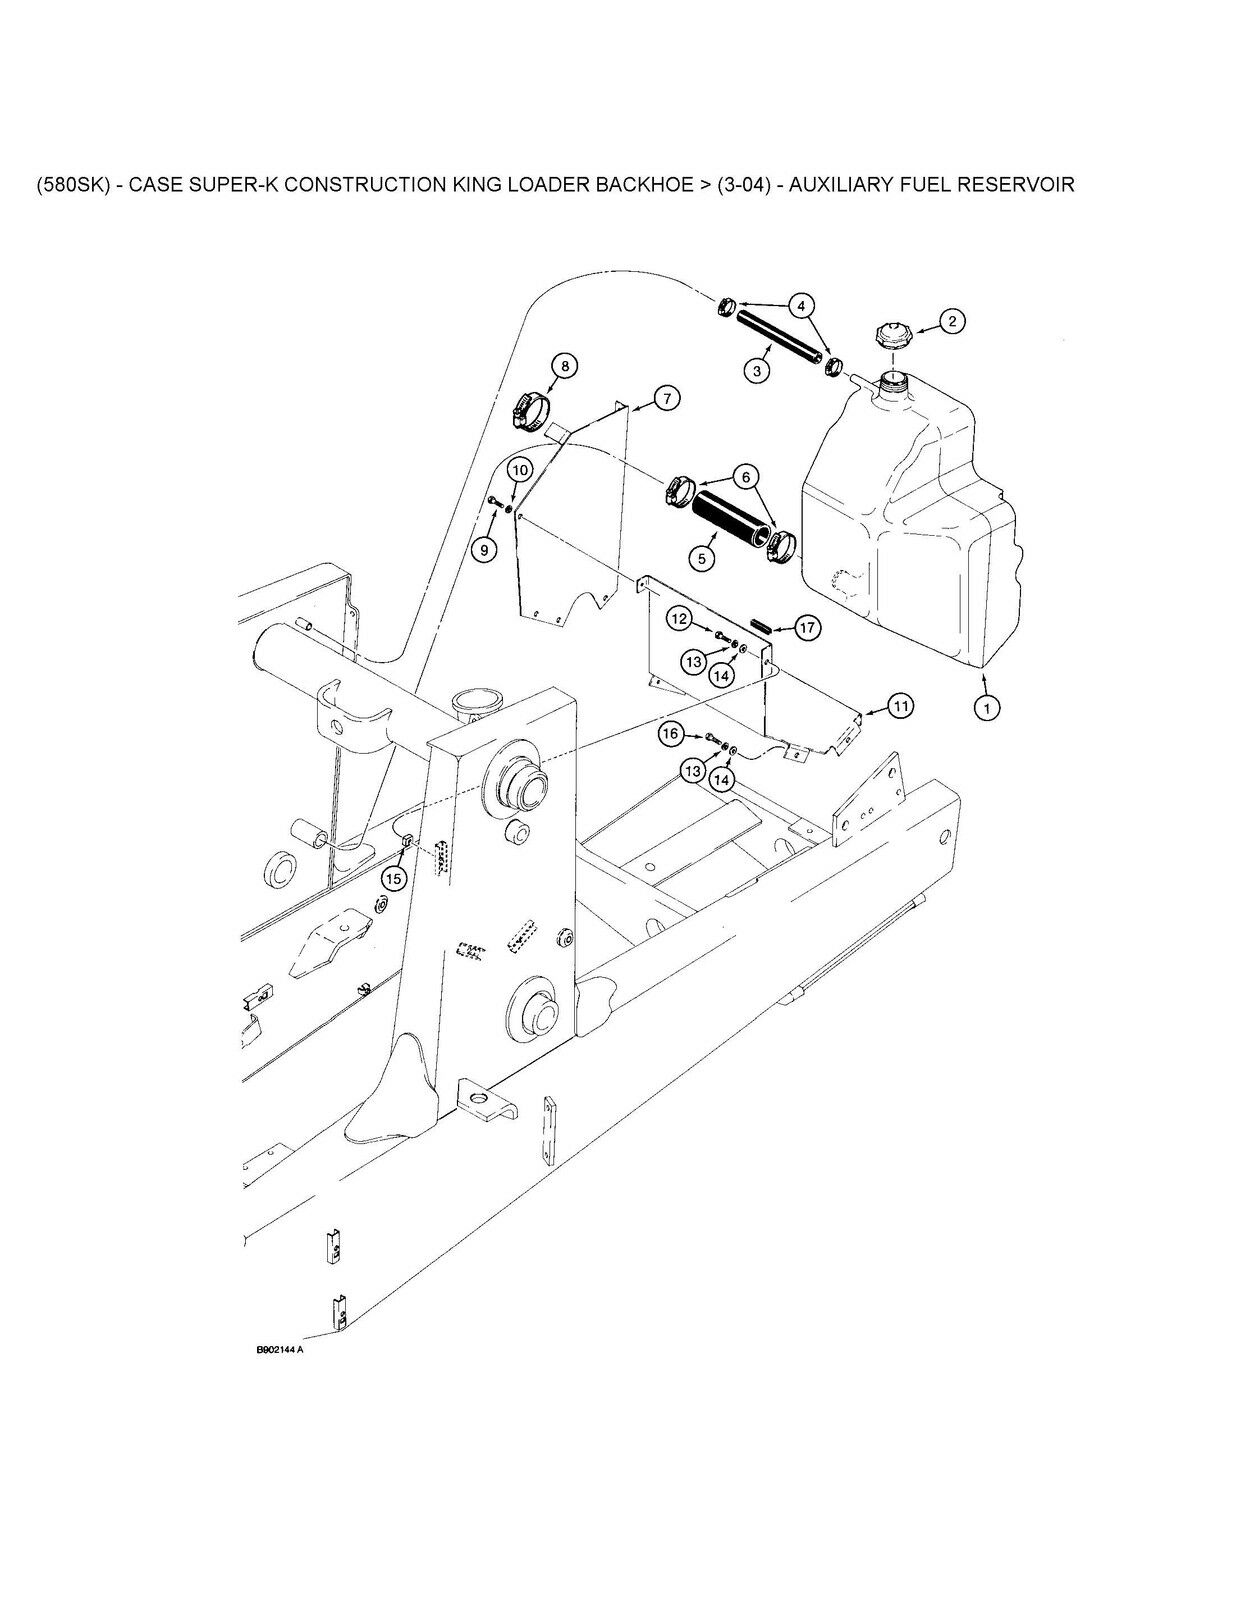 hight resolution of wiring schematic for case 580 sk backhoe basic guide wiring diagram u2022